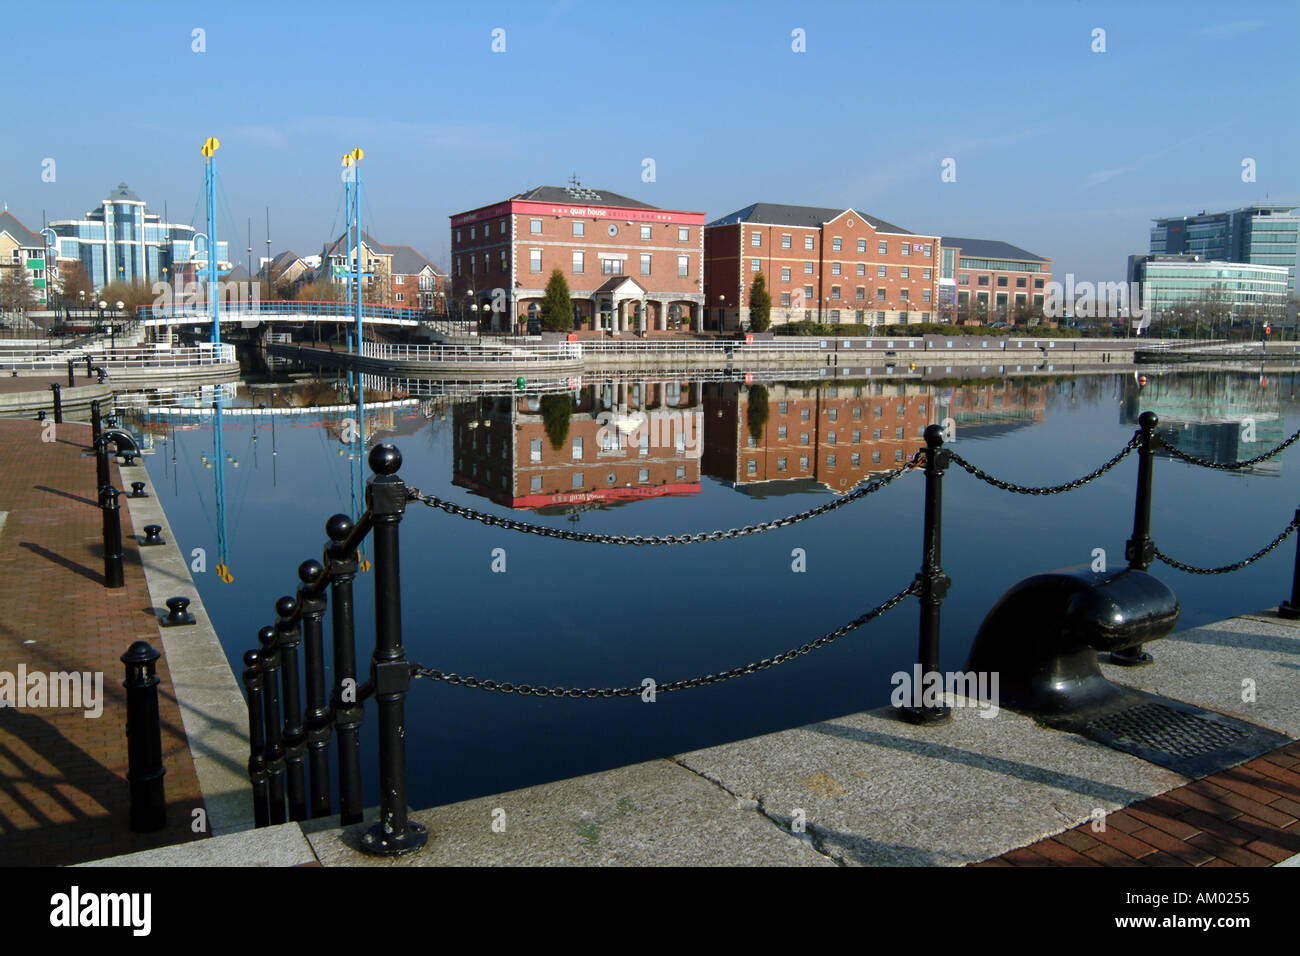 Inner City Development at Salford Quays Greater Manchester Northern England UK EU - Stock Image